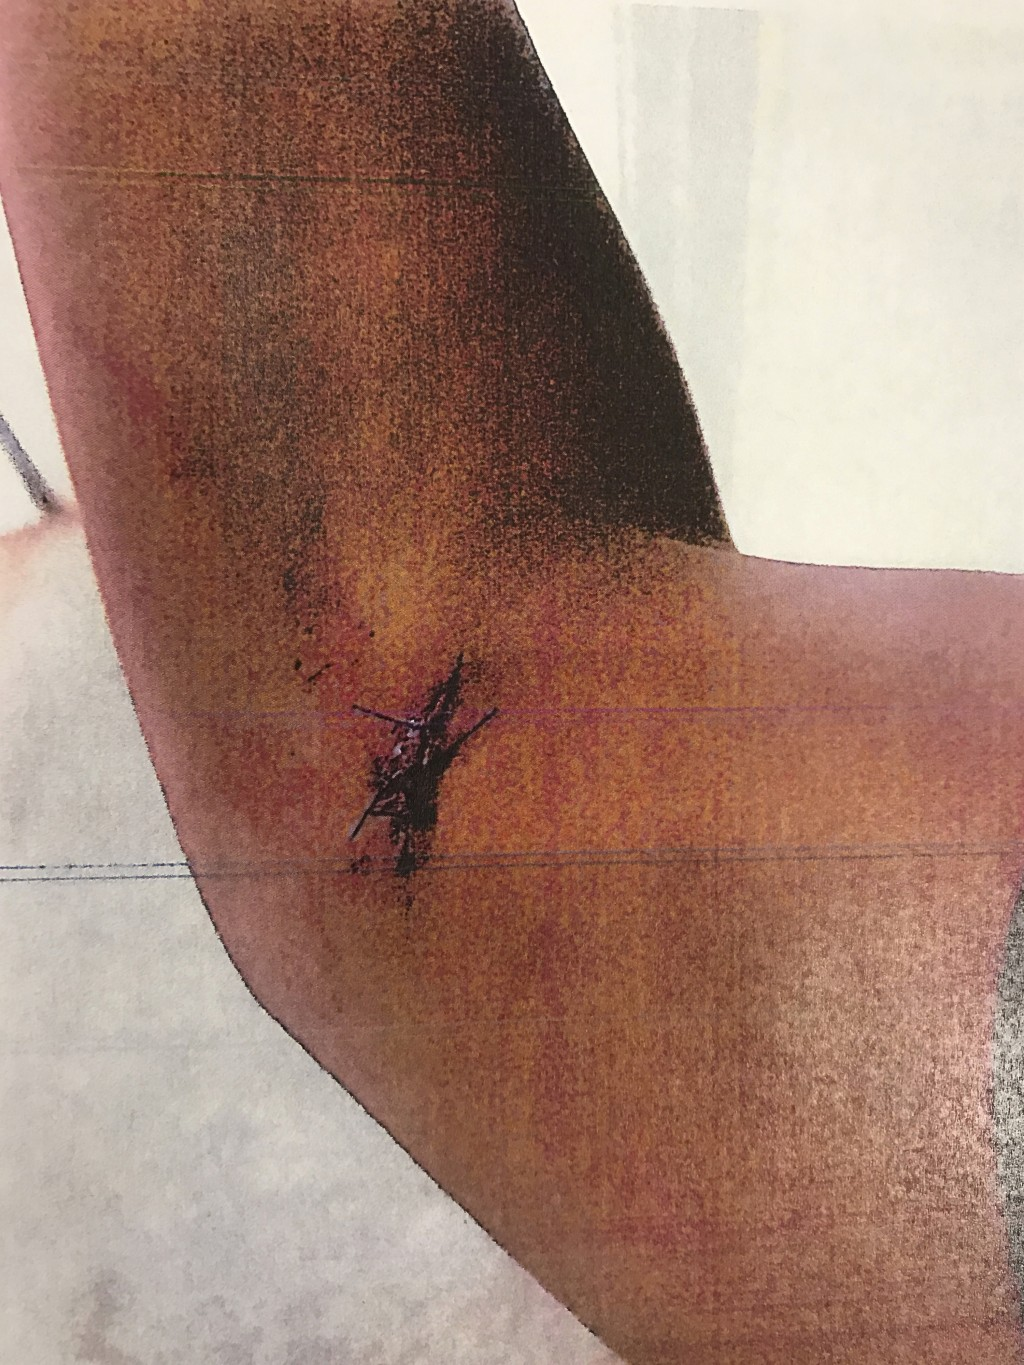 This photo provided by the Los Angeles County Superior Court shows what appears to be a wound closed by stitches on the arm of John Conyers III's form